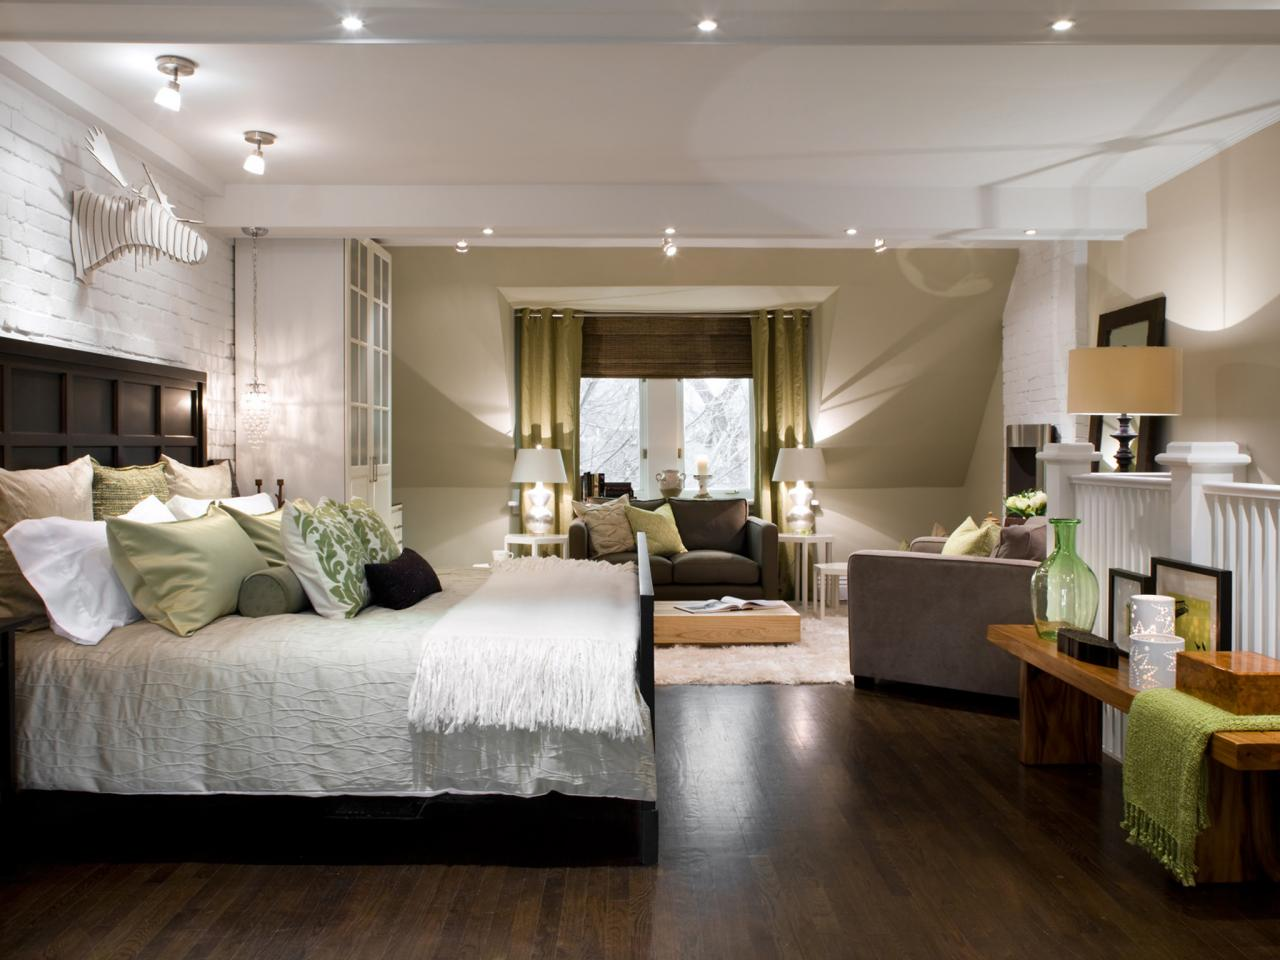 Bedroom Lighting: Utilizing Lighting in a Bedroom